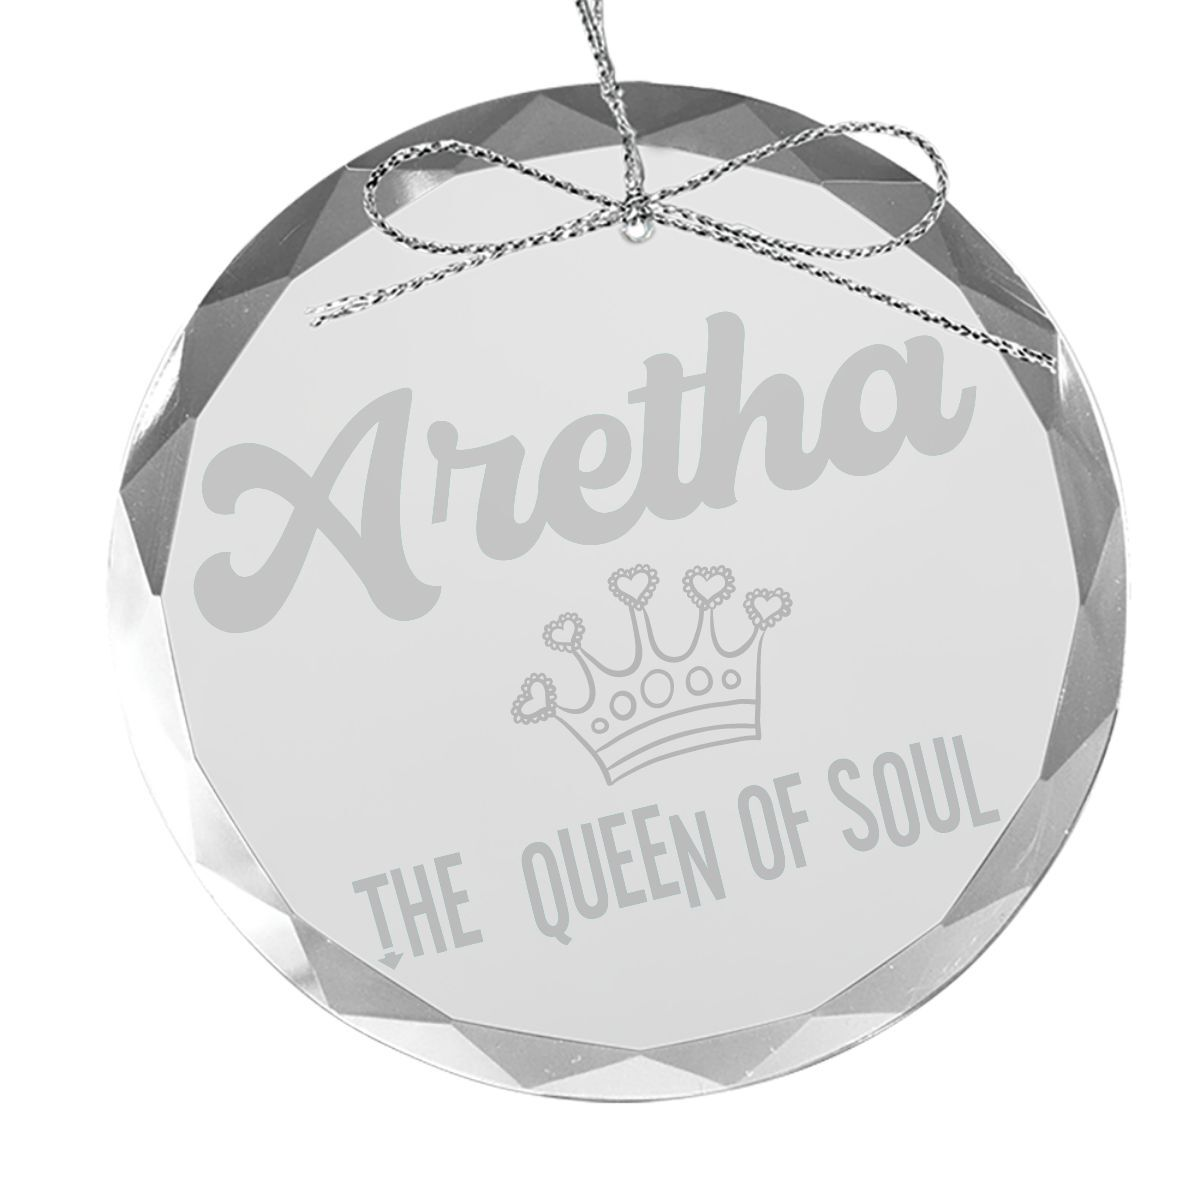 Queen Of Soul Round Laser-Etched Glass Ornament